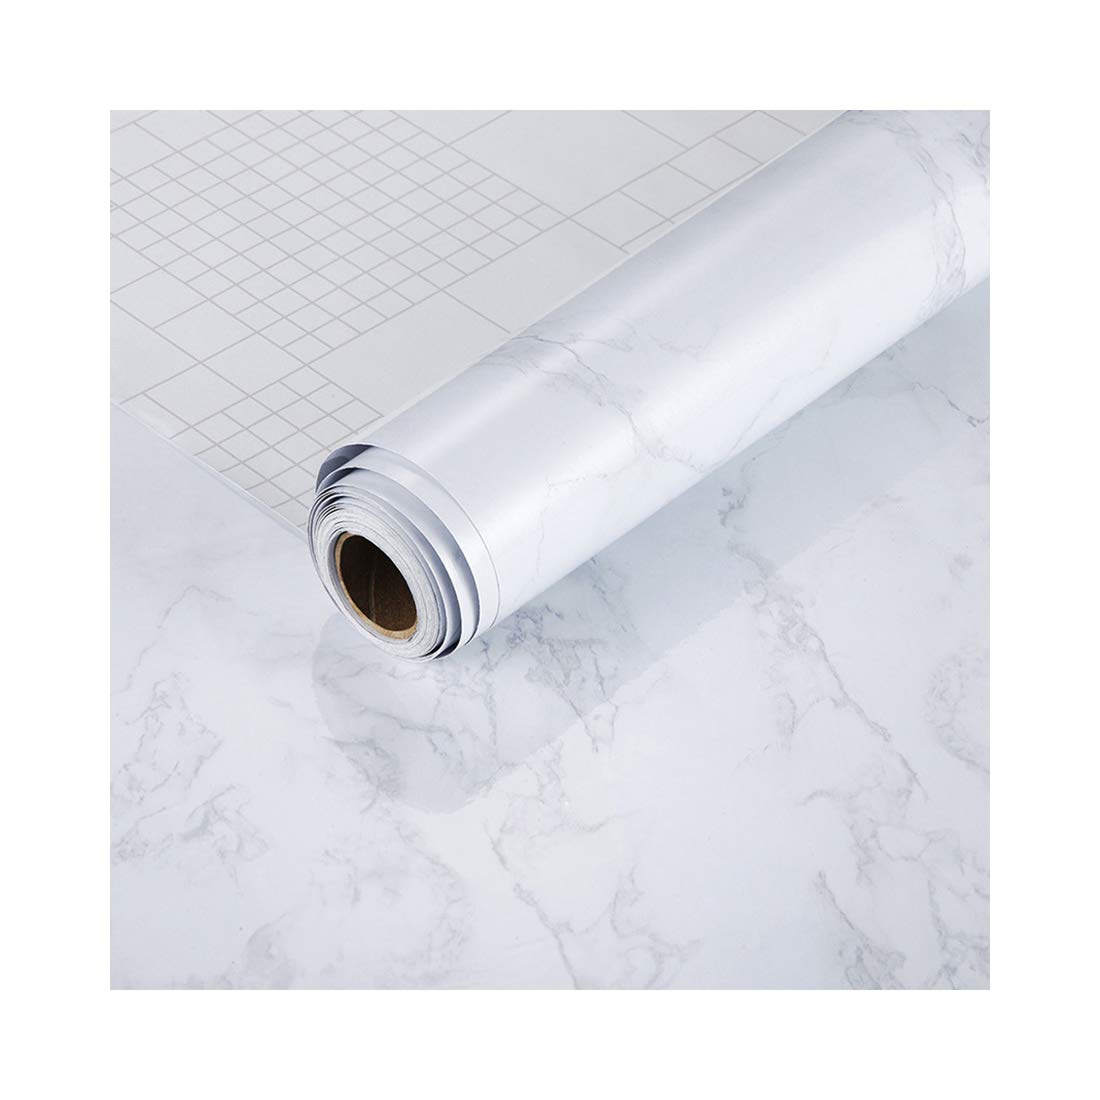 11.8'' x196.8''(16.2sq.ft) Marble Contact Paper-Self Adhesive Contact Paper Roll Granite Gray/White Vinyl Wallpaper Kitchen Anti-Oil Stickers Countertop Cabinet Furniture Renovated Waterproof Practical